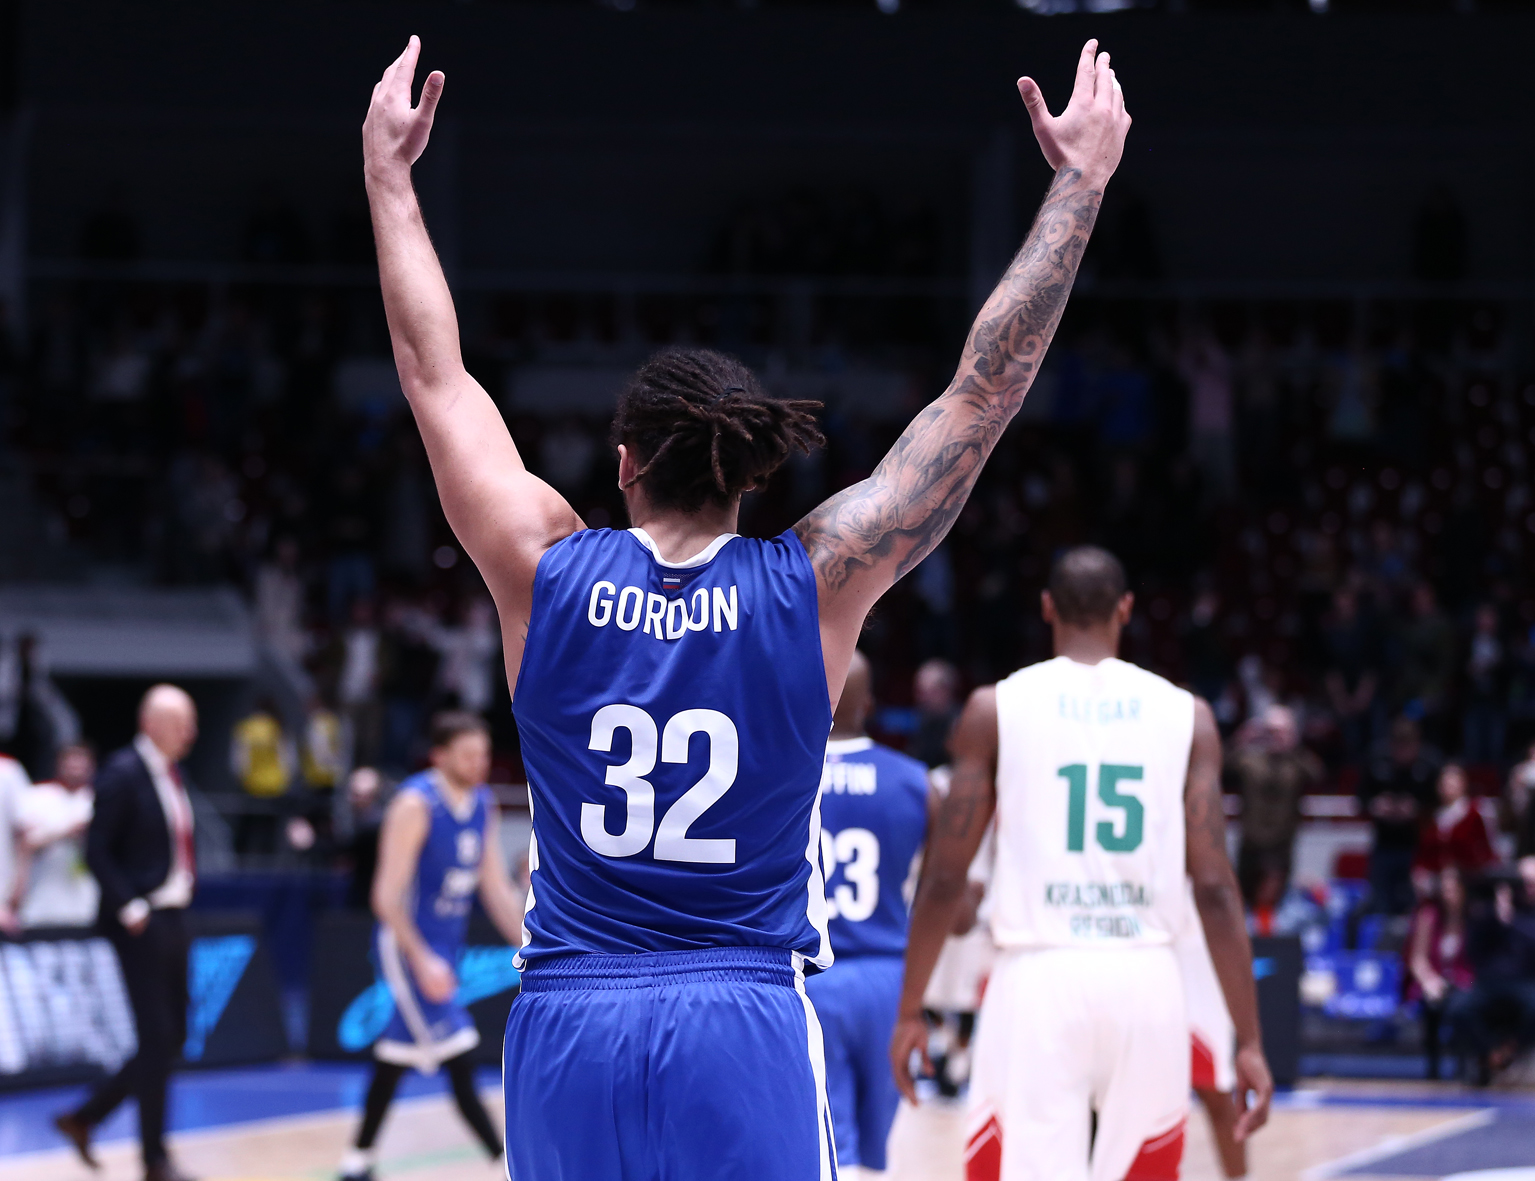 Gordon Rescues Zenit With Tip-In